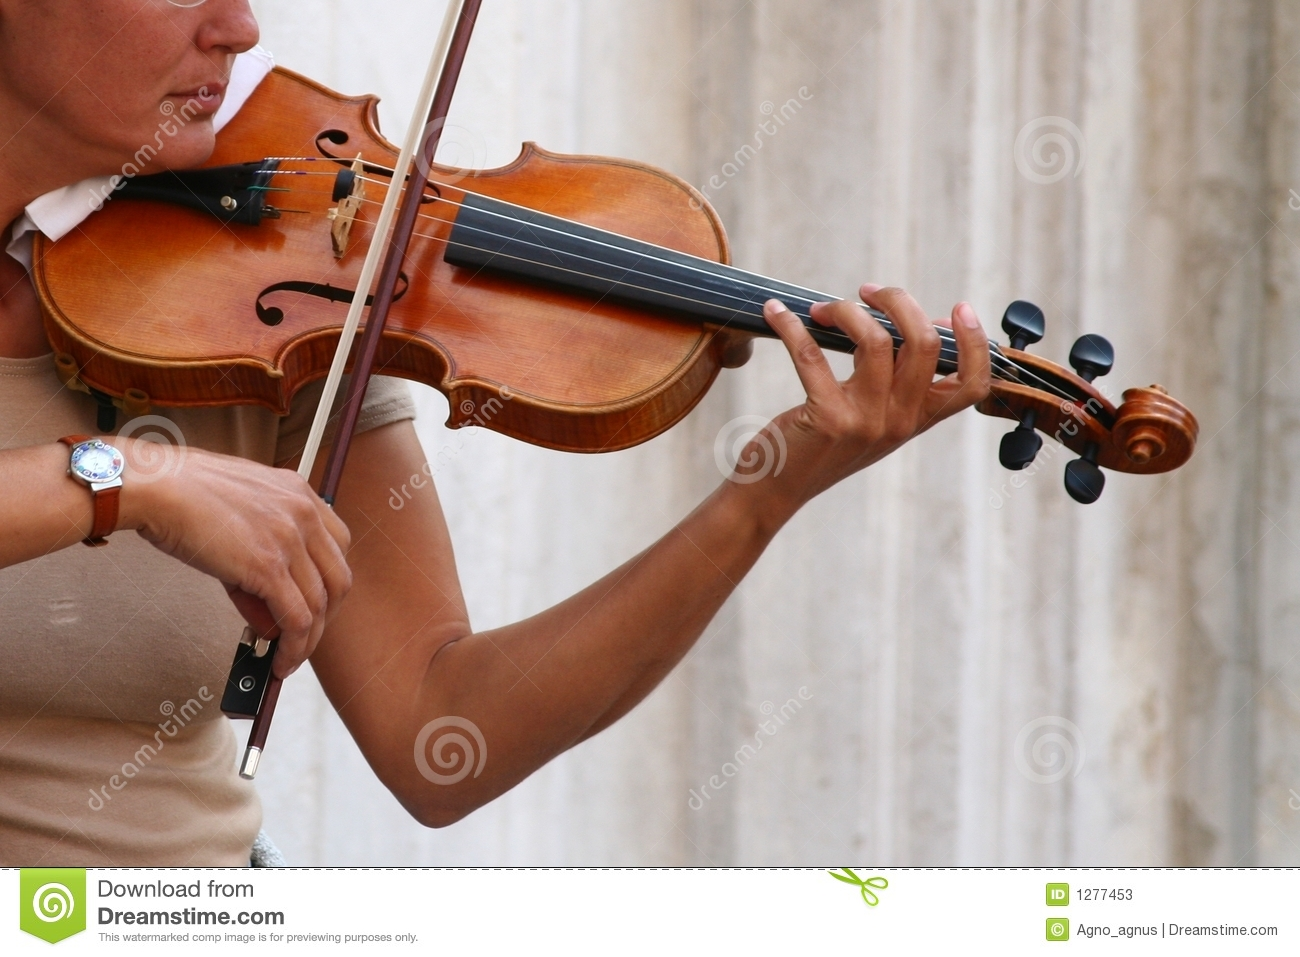 how use of violin during the 2 loosen the violin strings while it is true that your violin case is a good protection, your violin will still be exposed to temperature changes excess tension on the violin string may occur due to decreased humidity and fluctuating weather/temperature conditions.